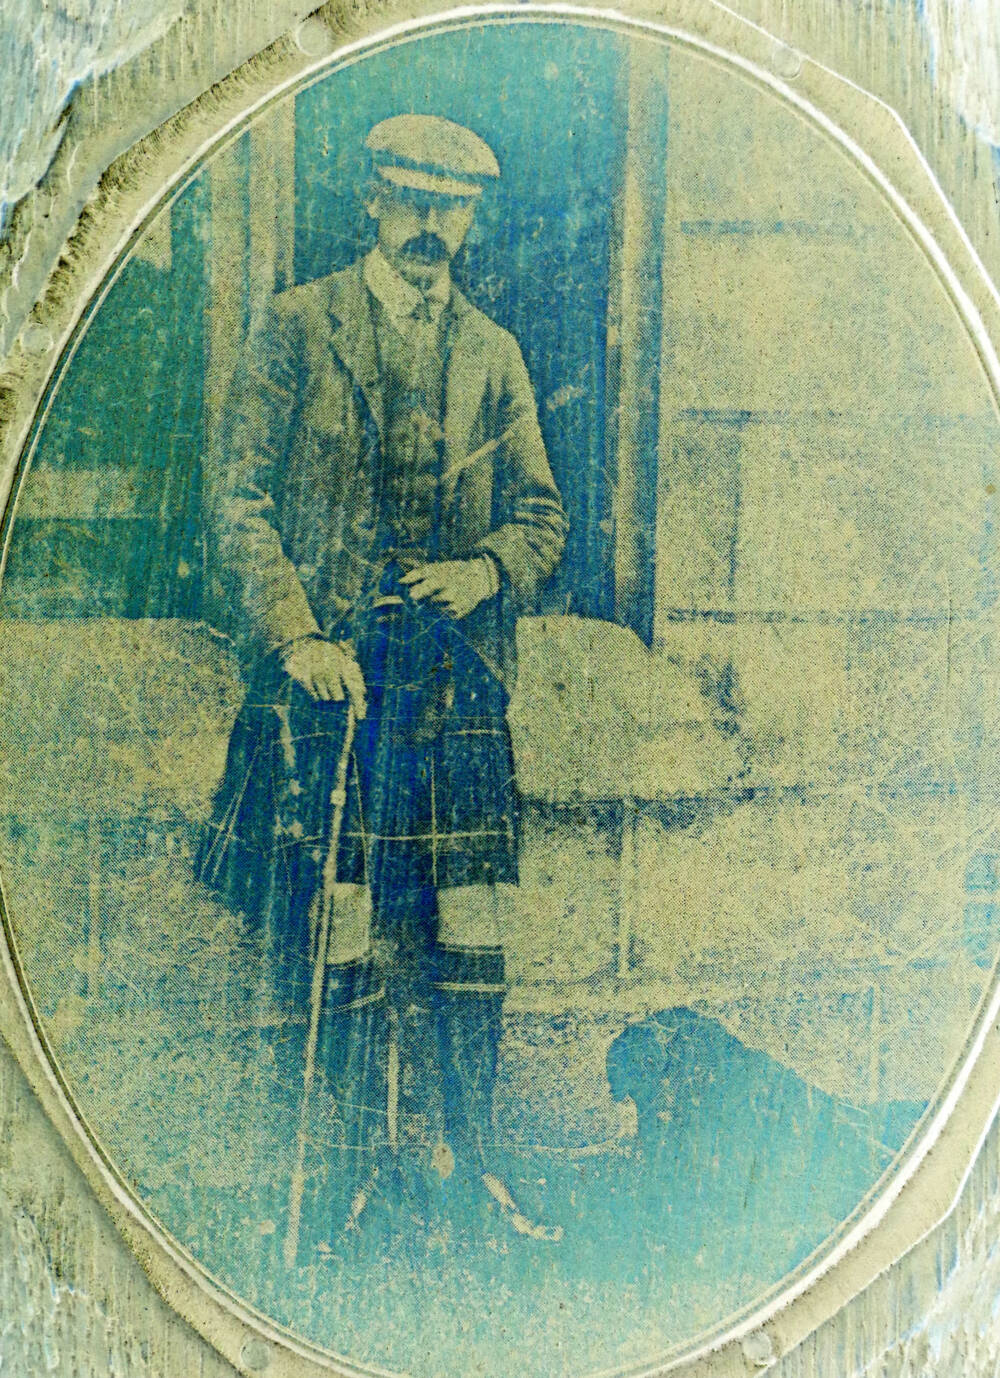 The positive image of a kilted man, holding a walking stick